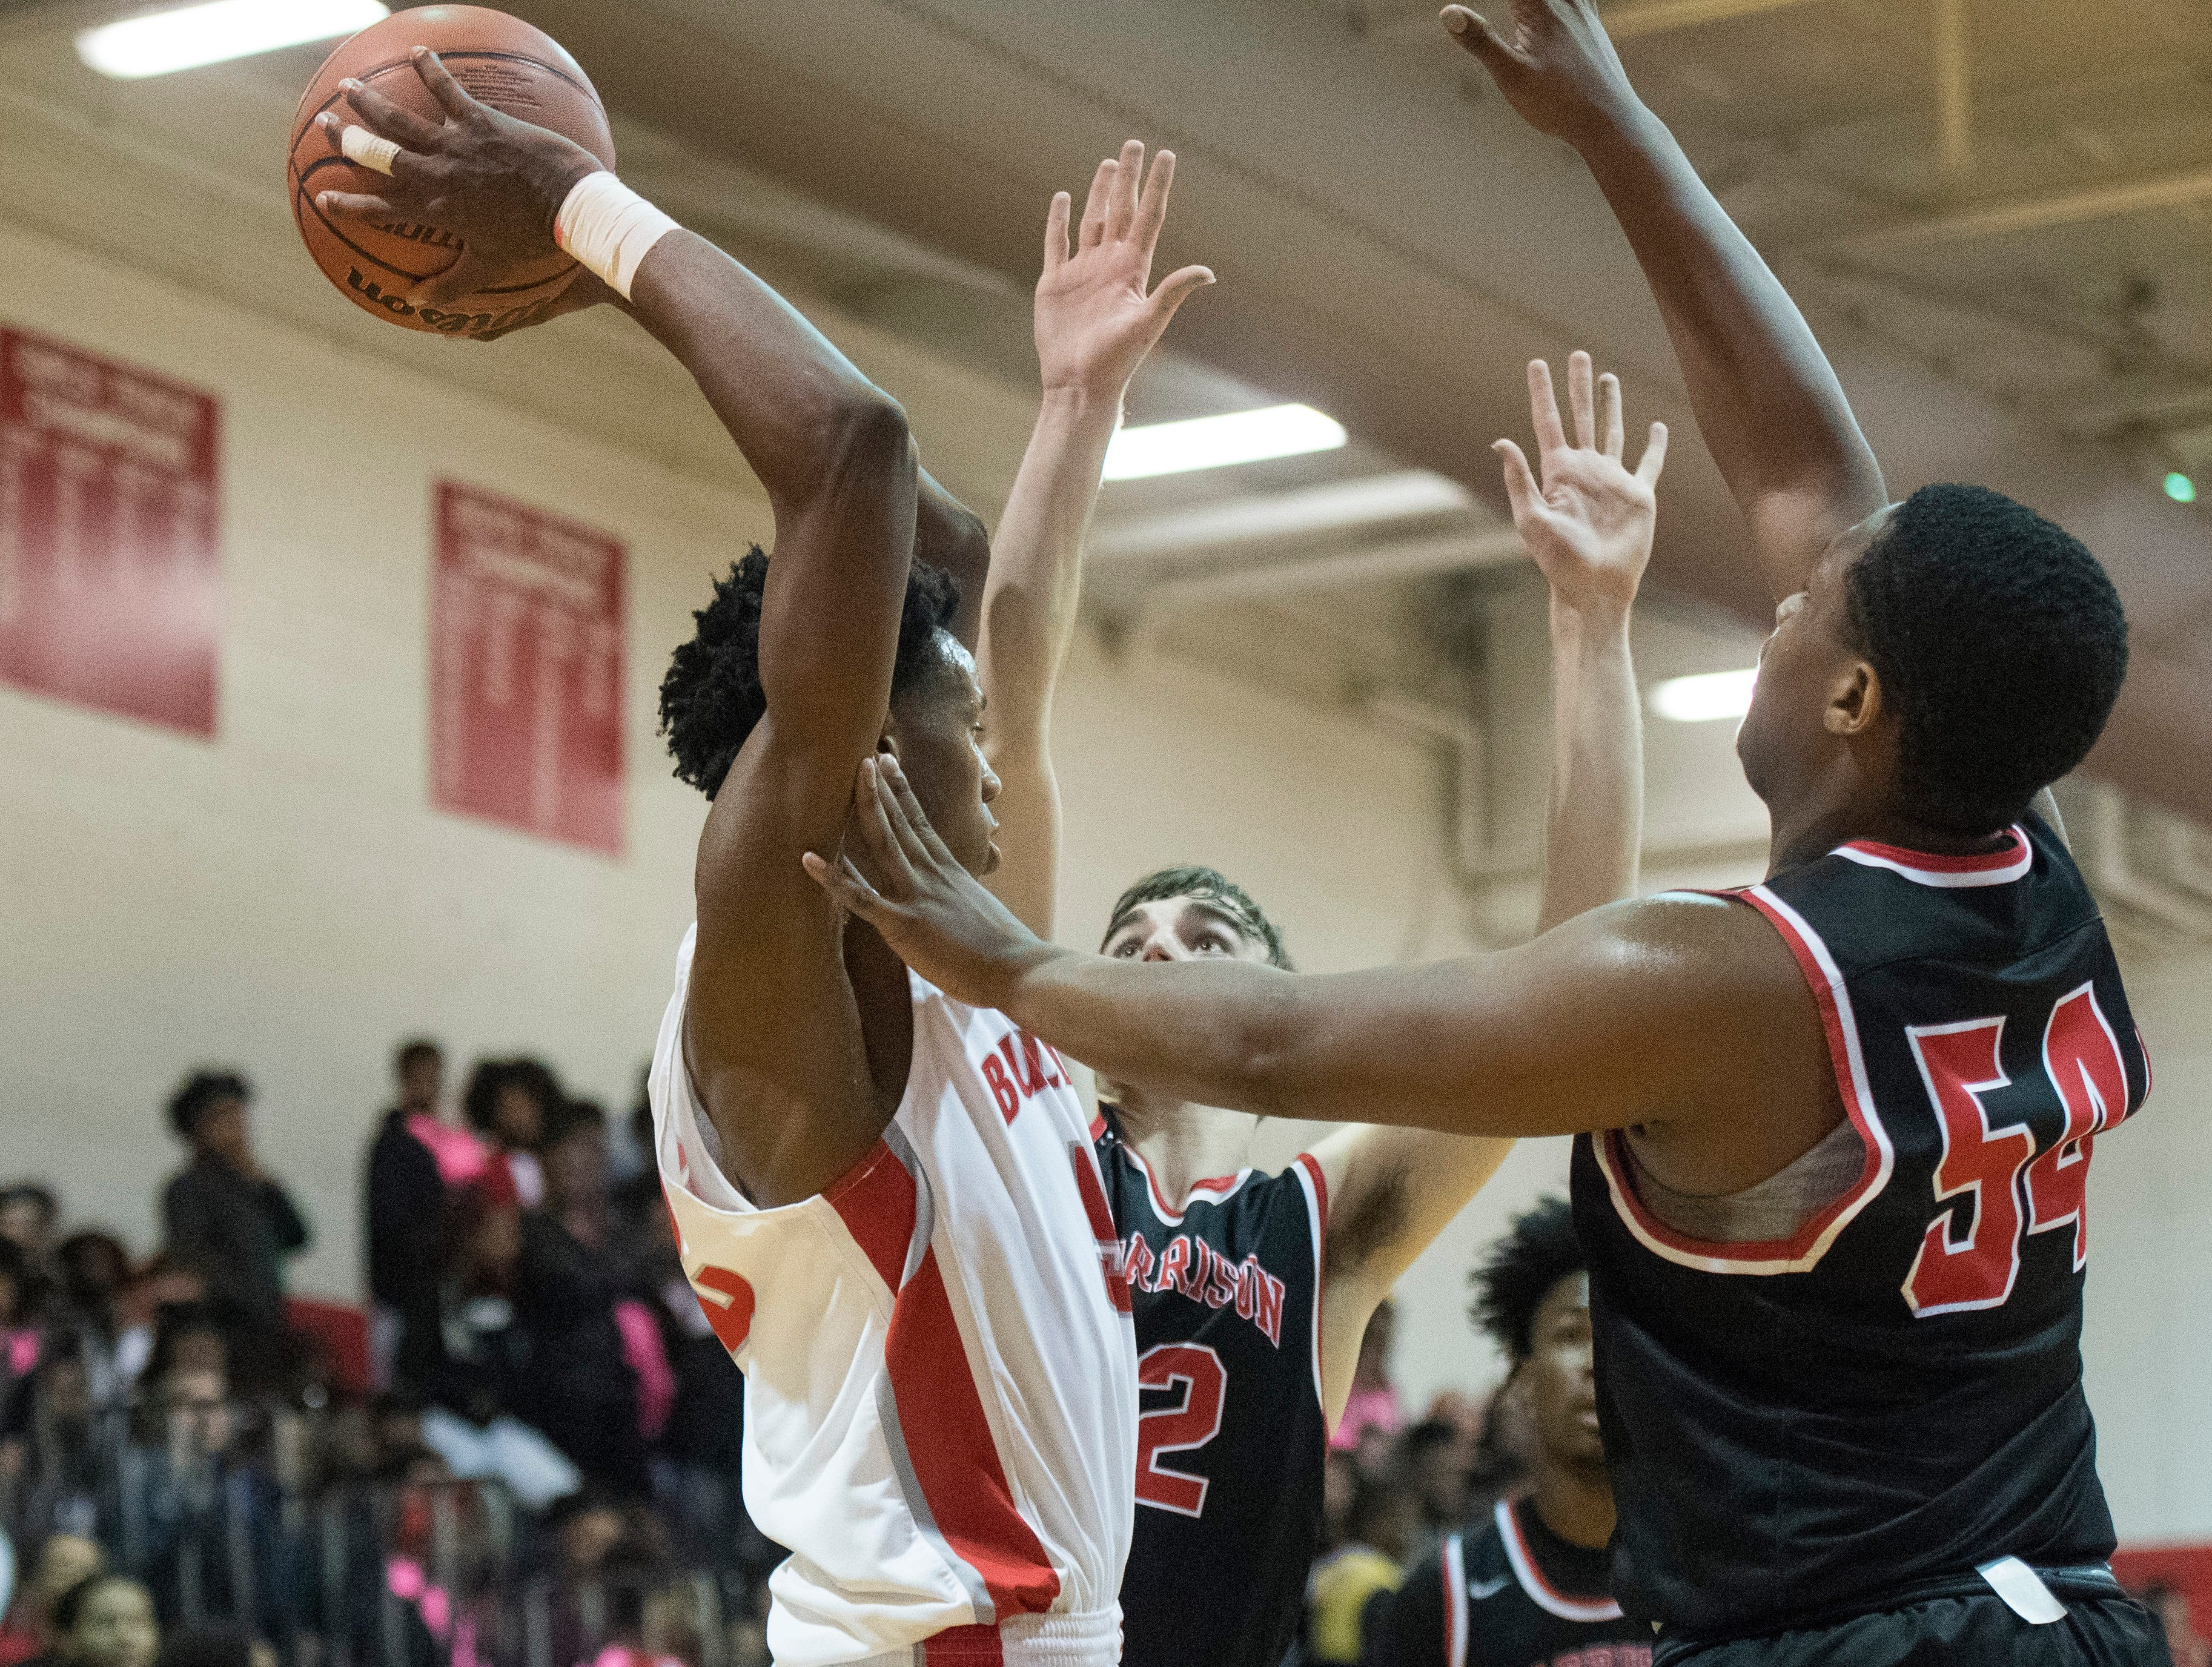 Bosse's Kiyron Powell (52) passes the ball after being overwhelmed by Warrior defense during the Harrison vs Bosse game at Bosse High School Tuesday, Feb. 12, 2019.